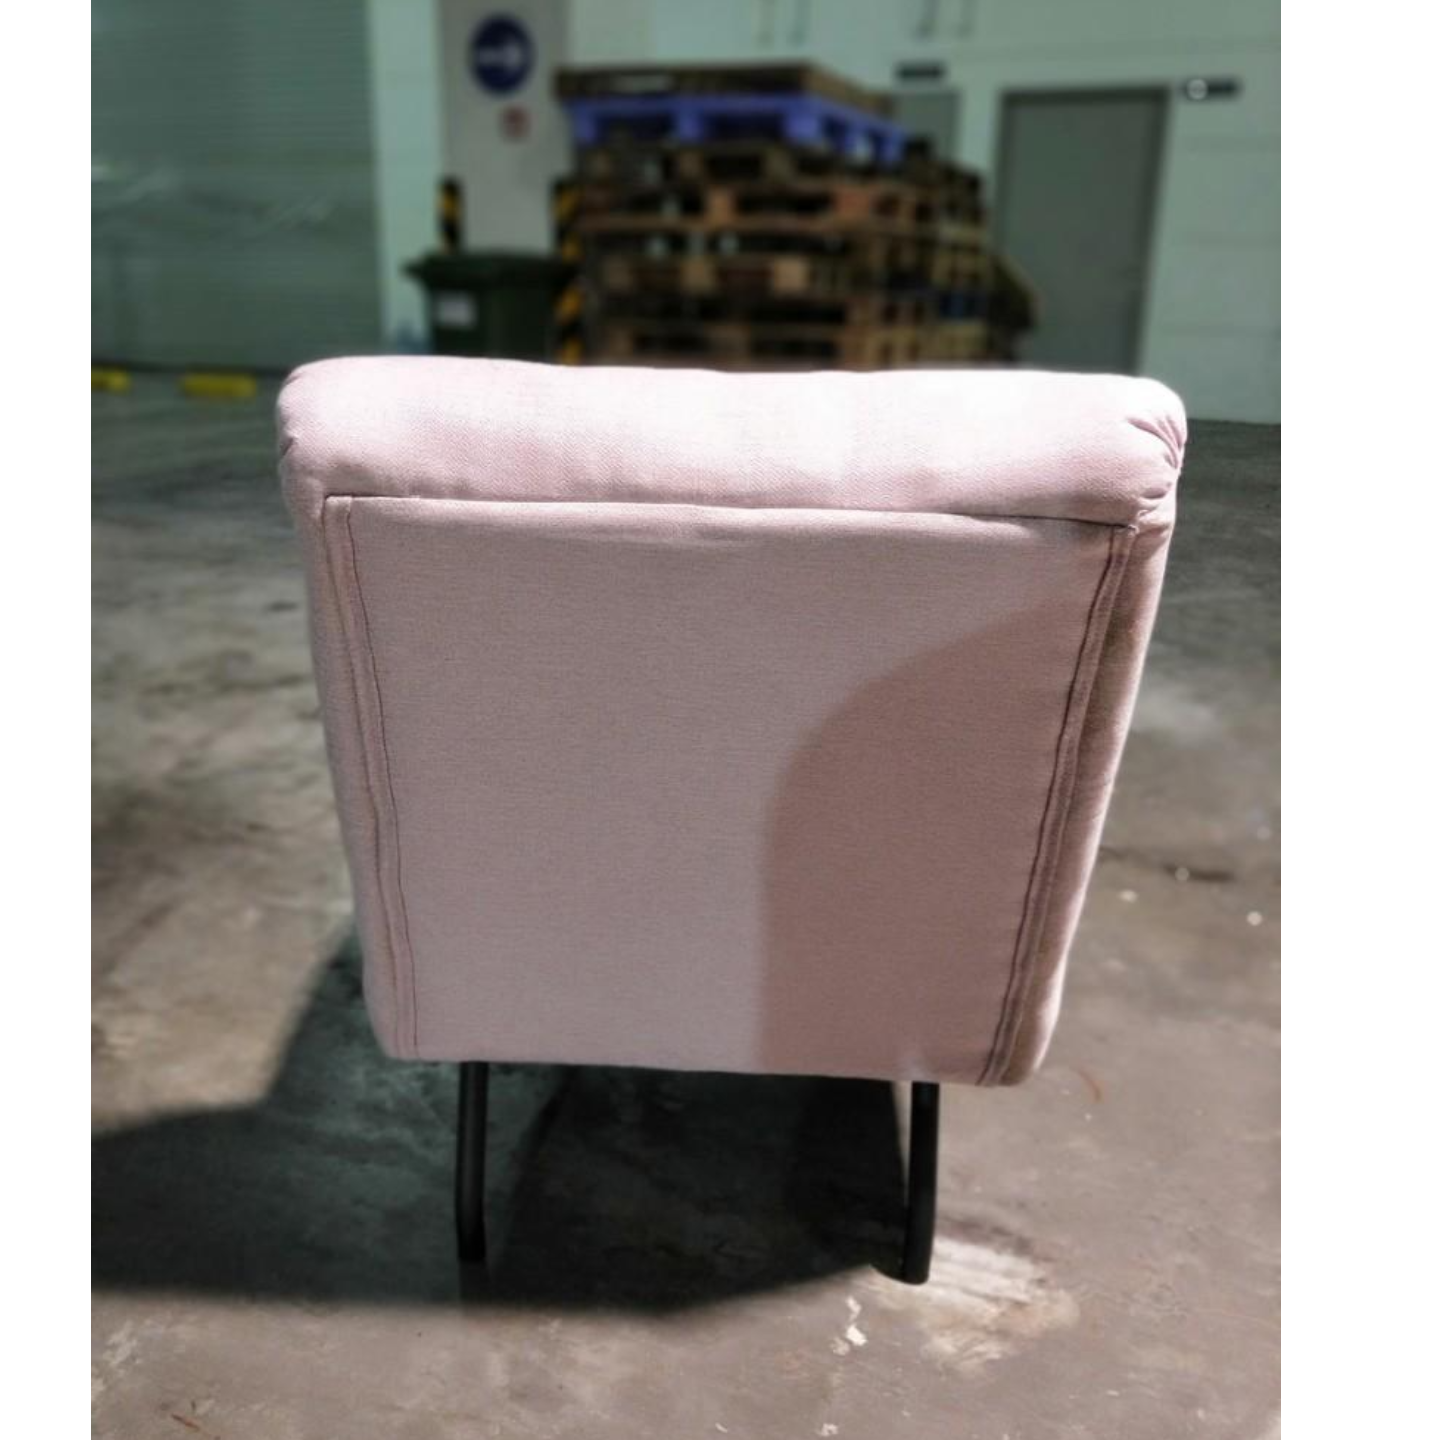 HENZA Lounge Chair in PALE PINK